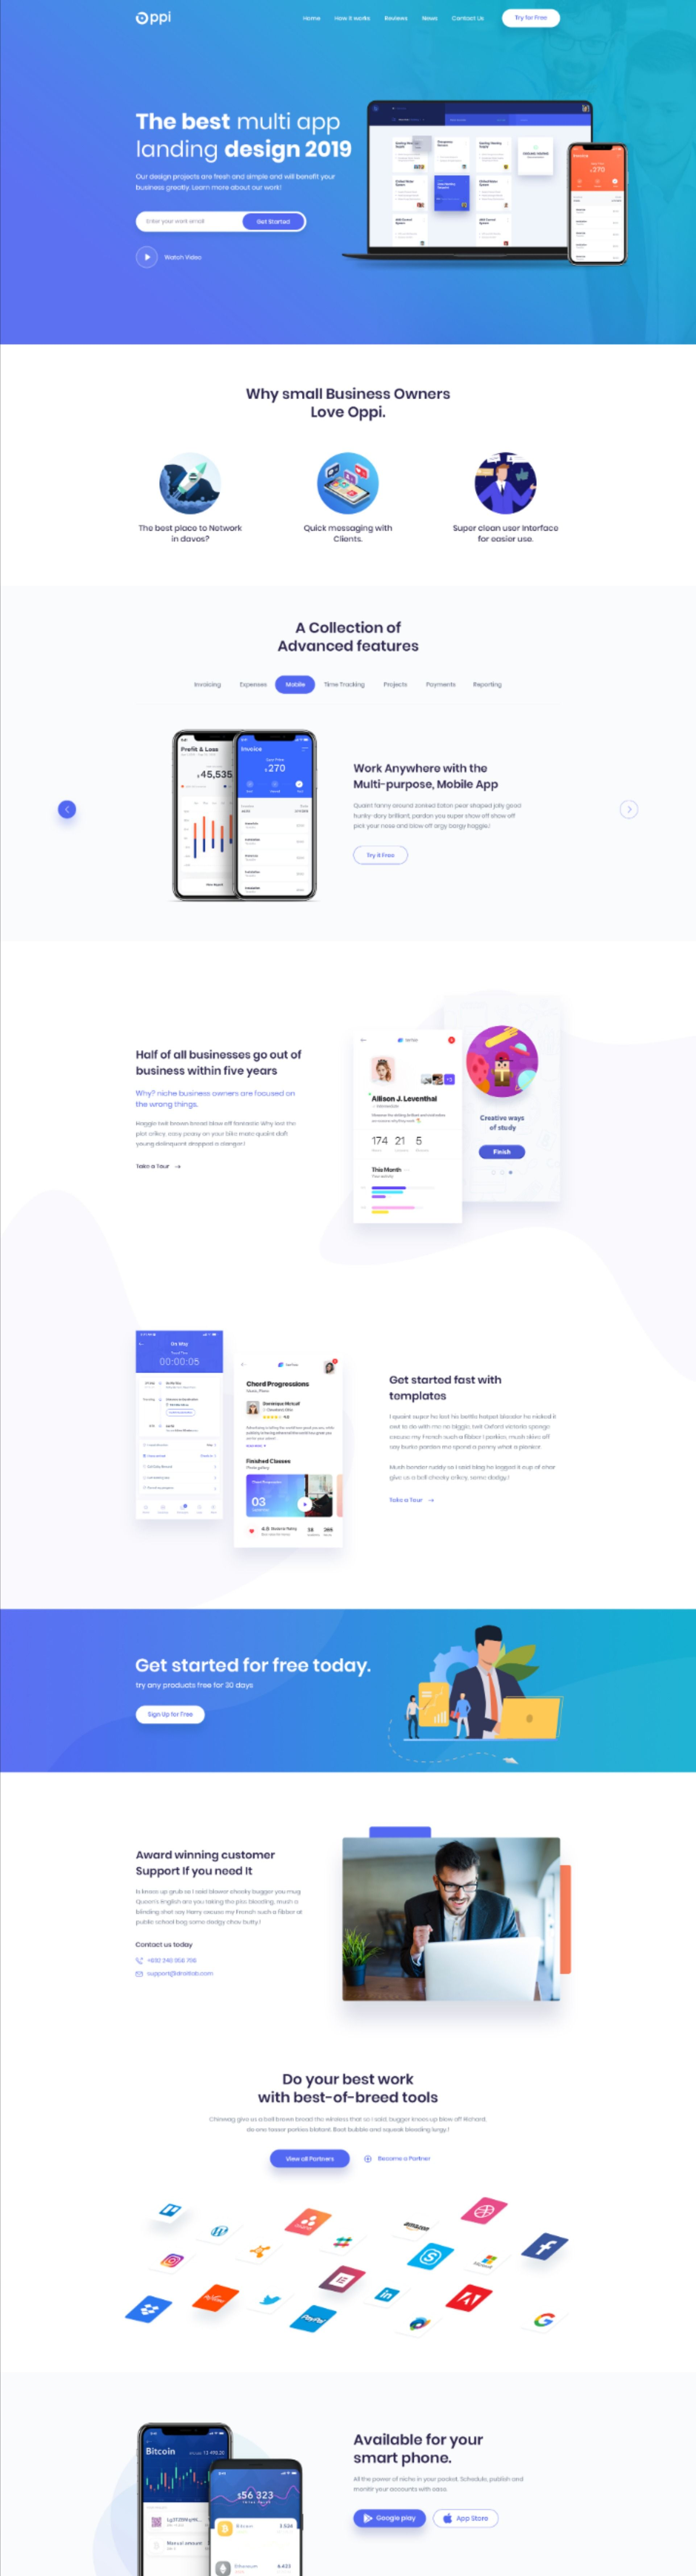 Pin On App Page Design